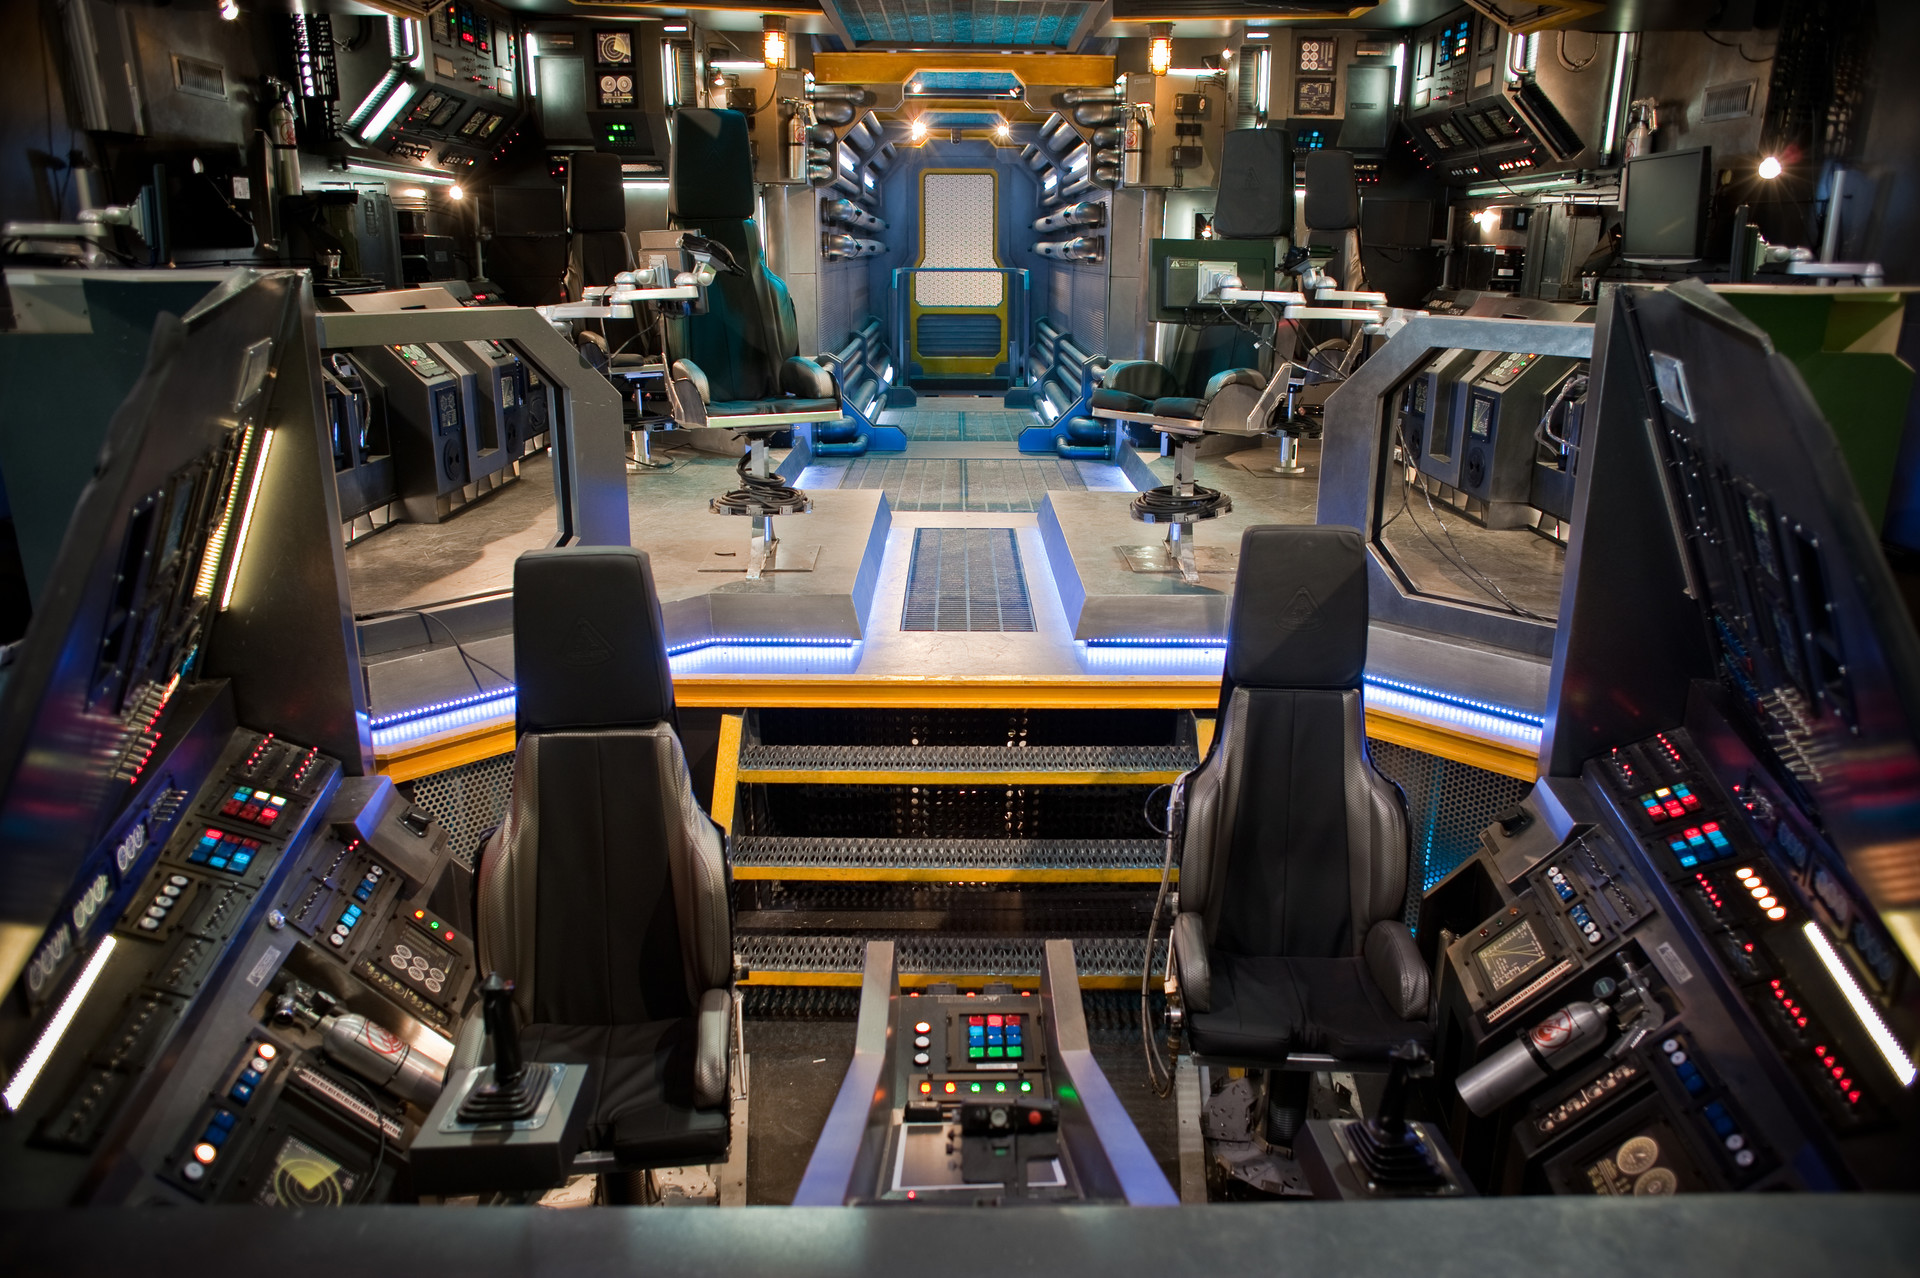 Ship's Interior / Final Build Set Photo for ScyFy's Eureka Season 5.